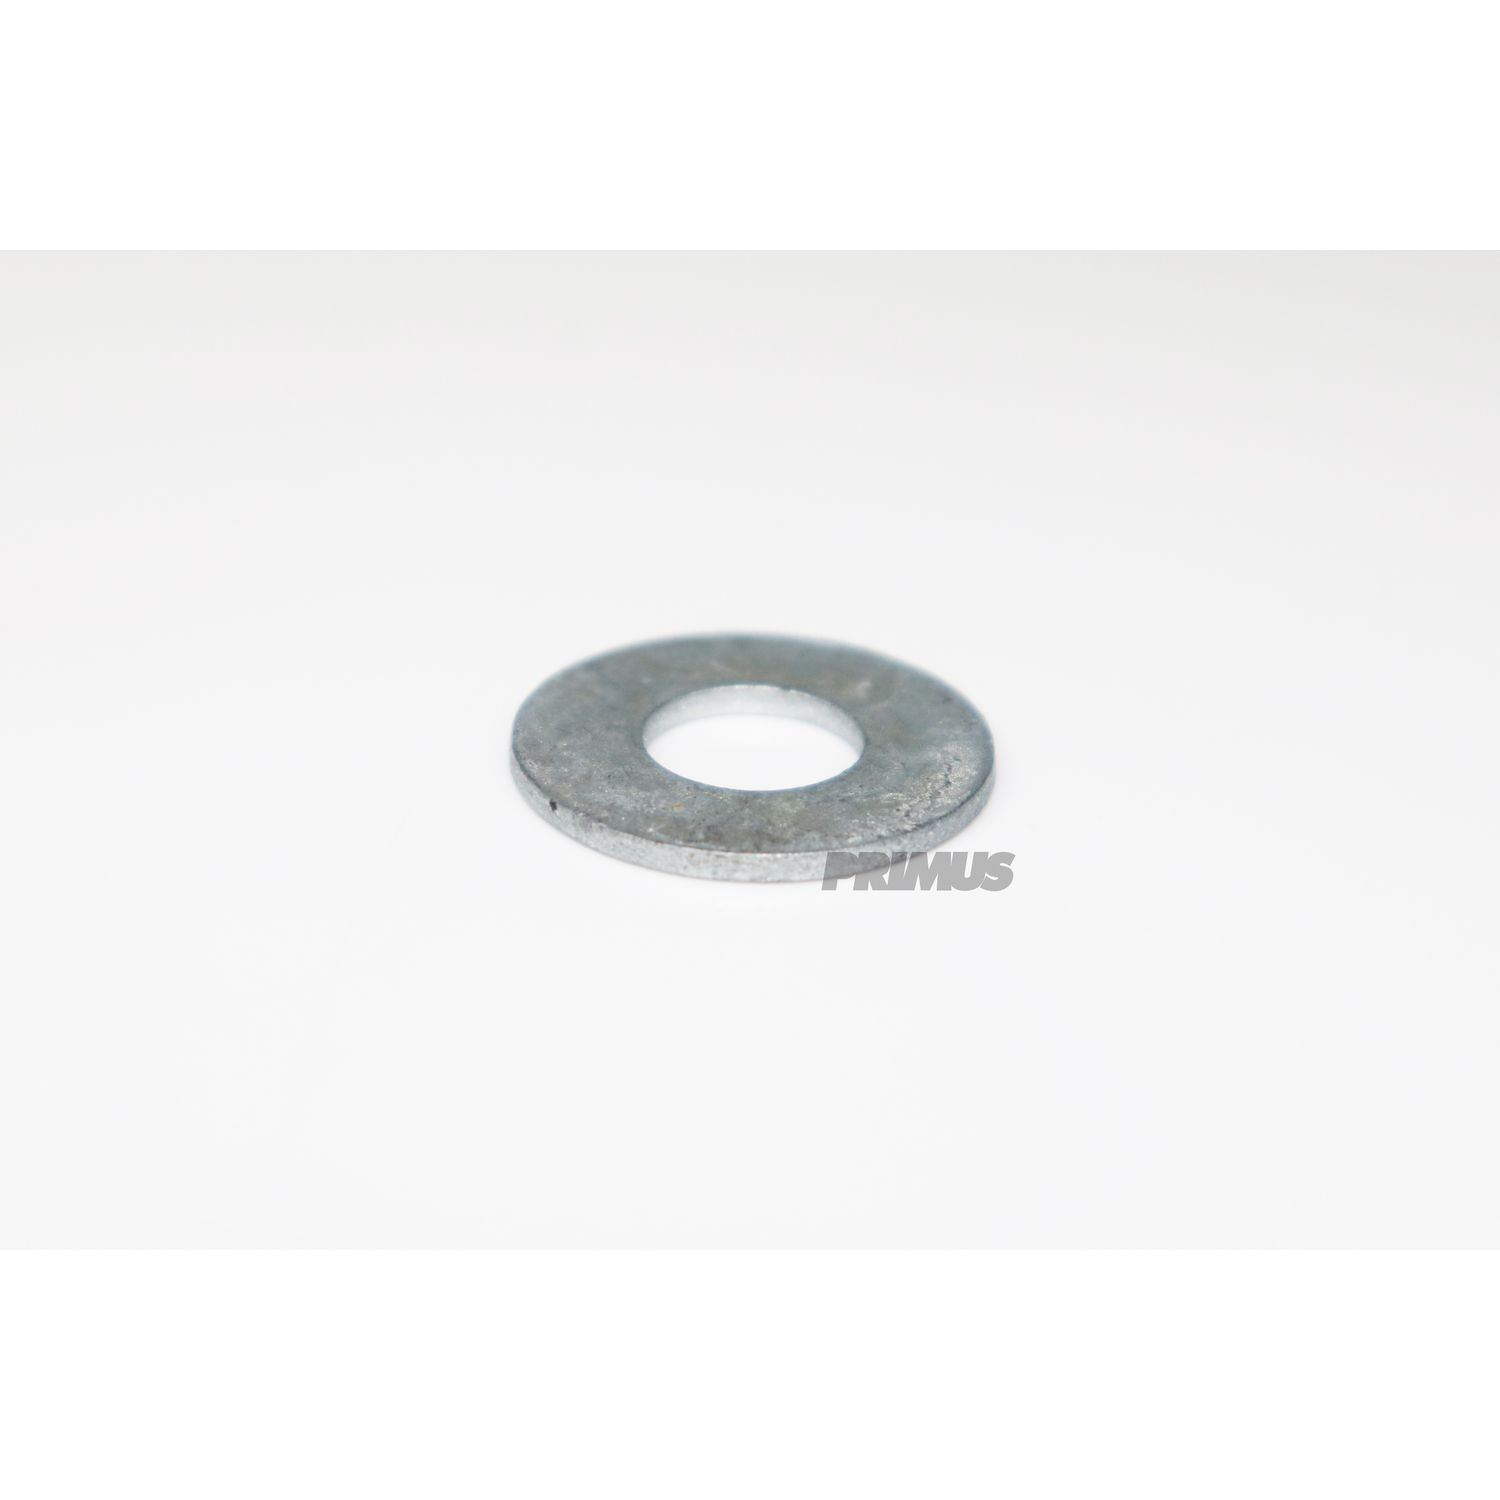 "3/8"" GALVANIZED FLAT WASHER"